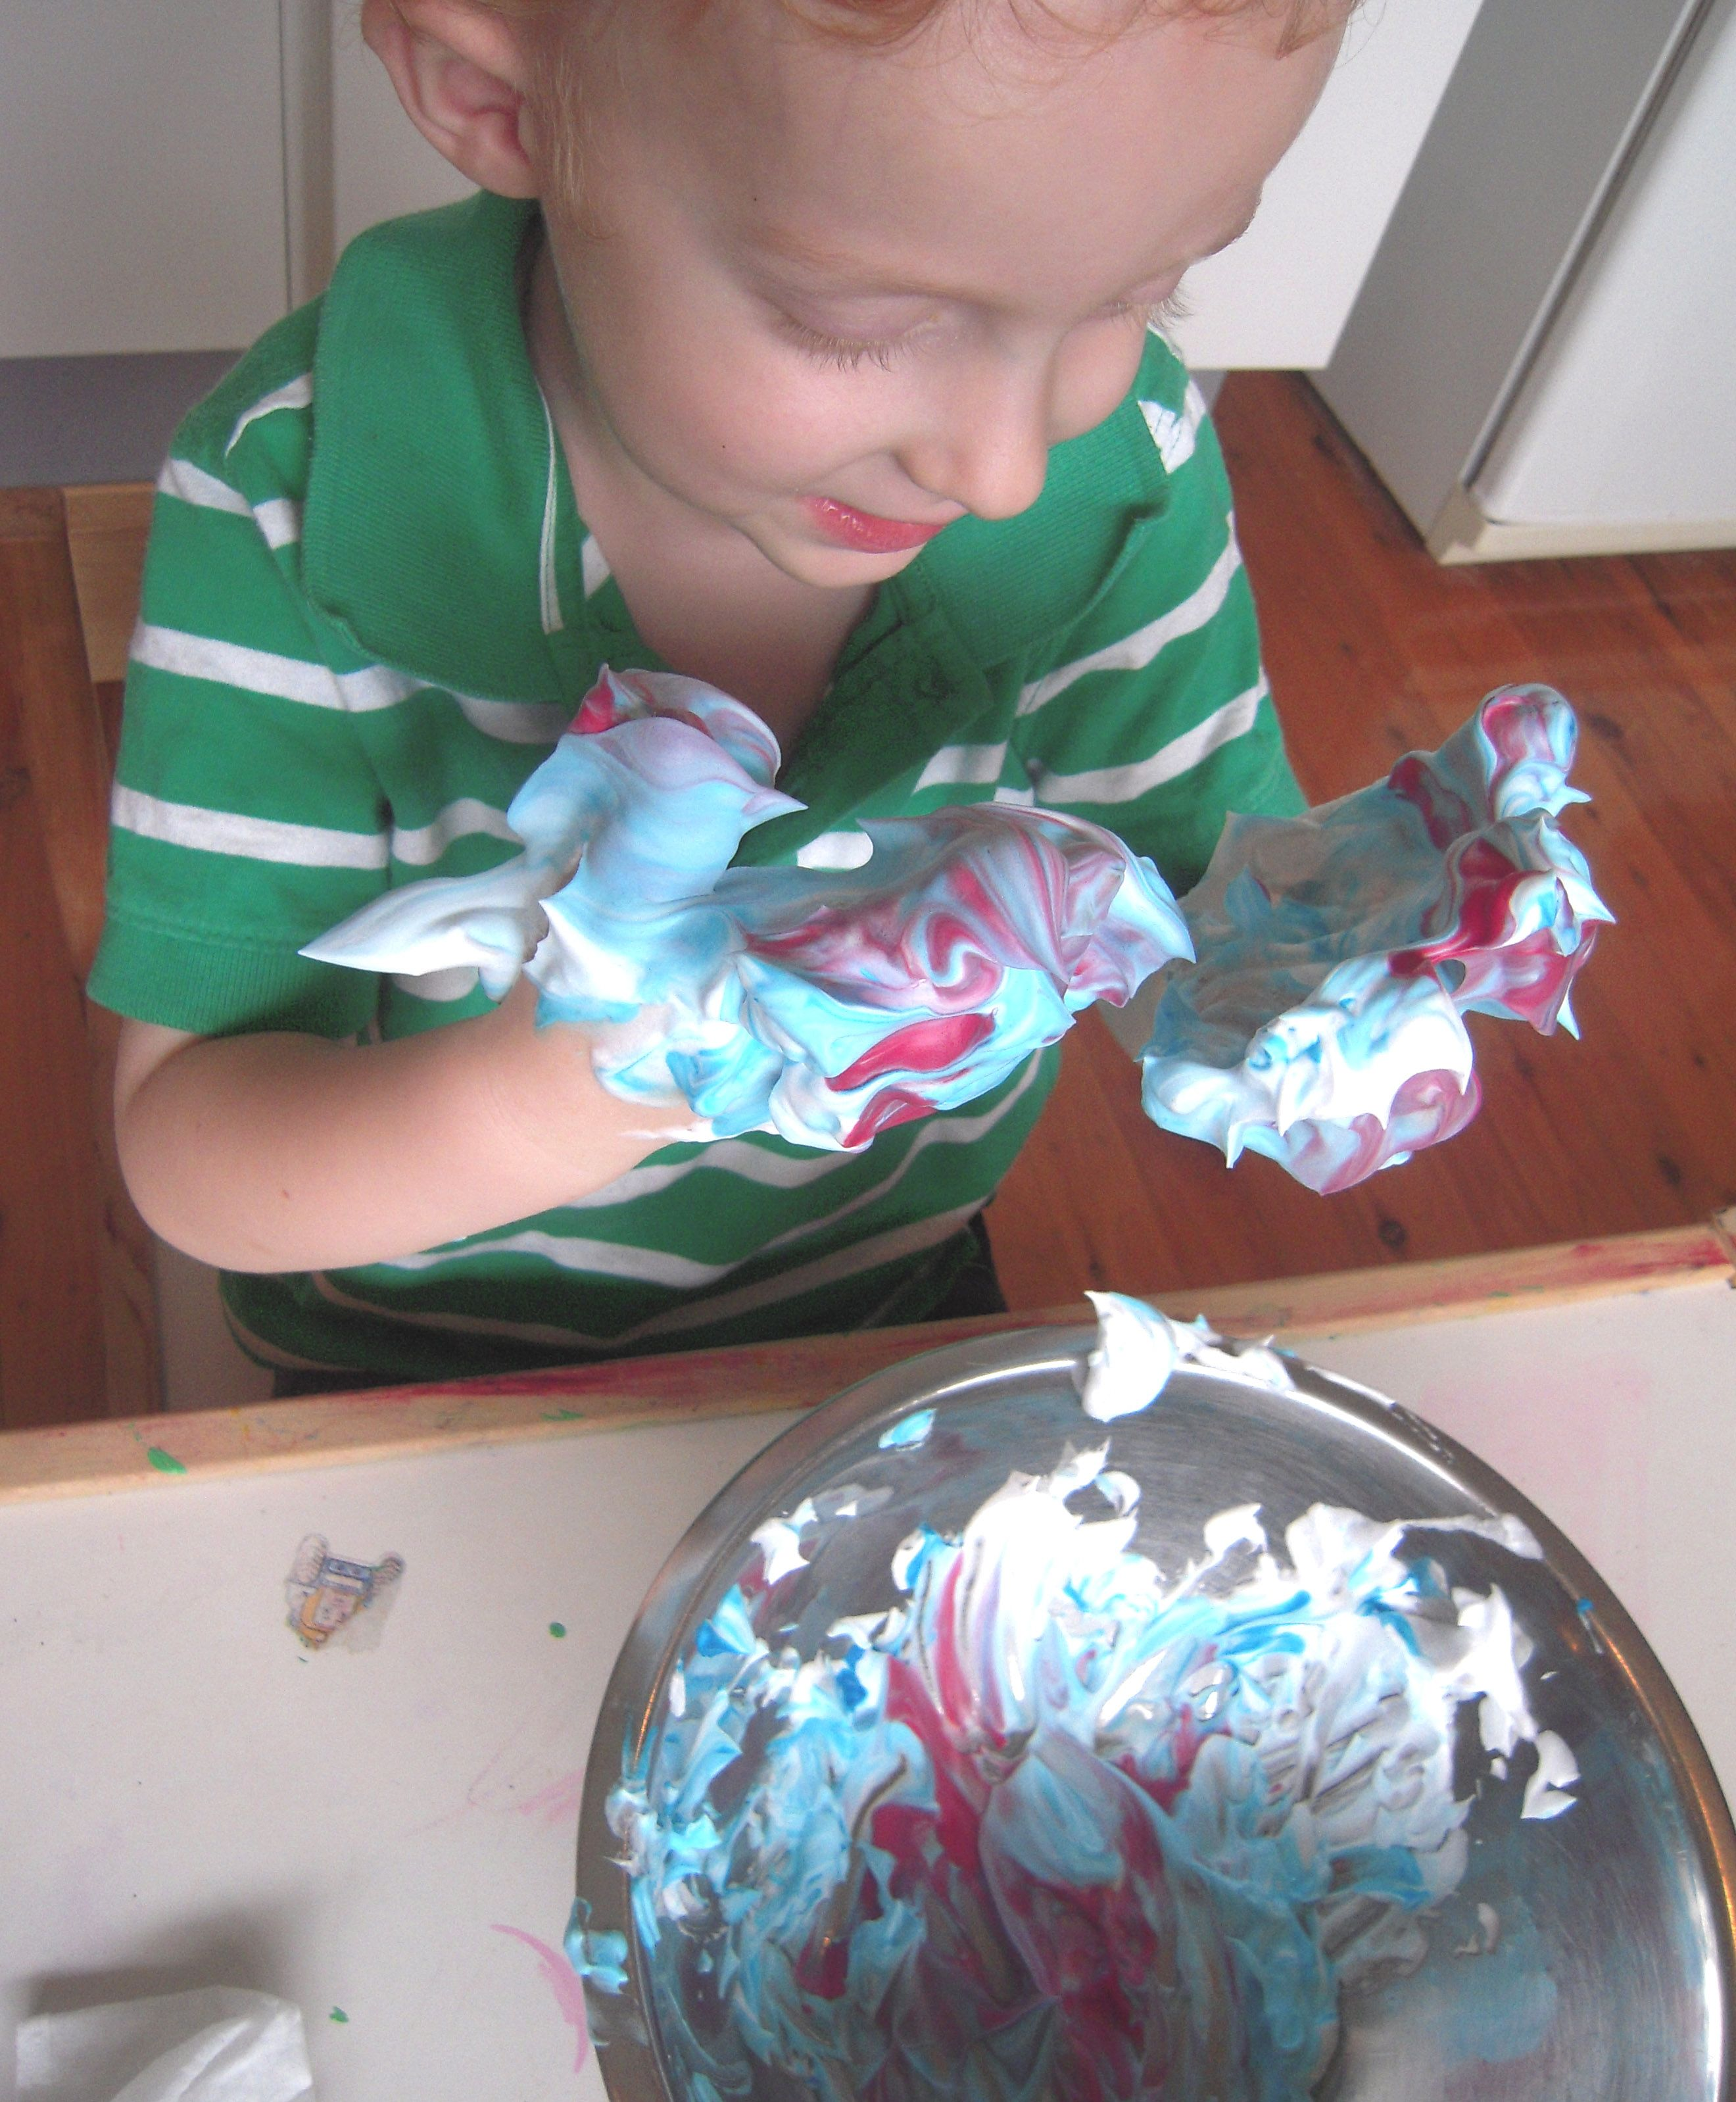 Sensory Play With Shaving Foam And Food Colouring Easy Cleanup Too Love This For Kids